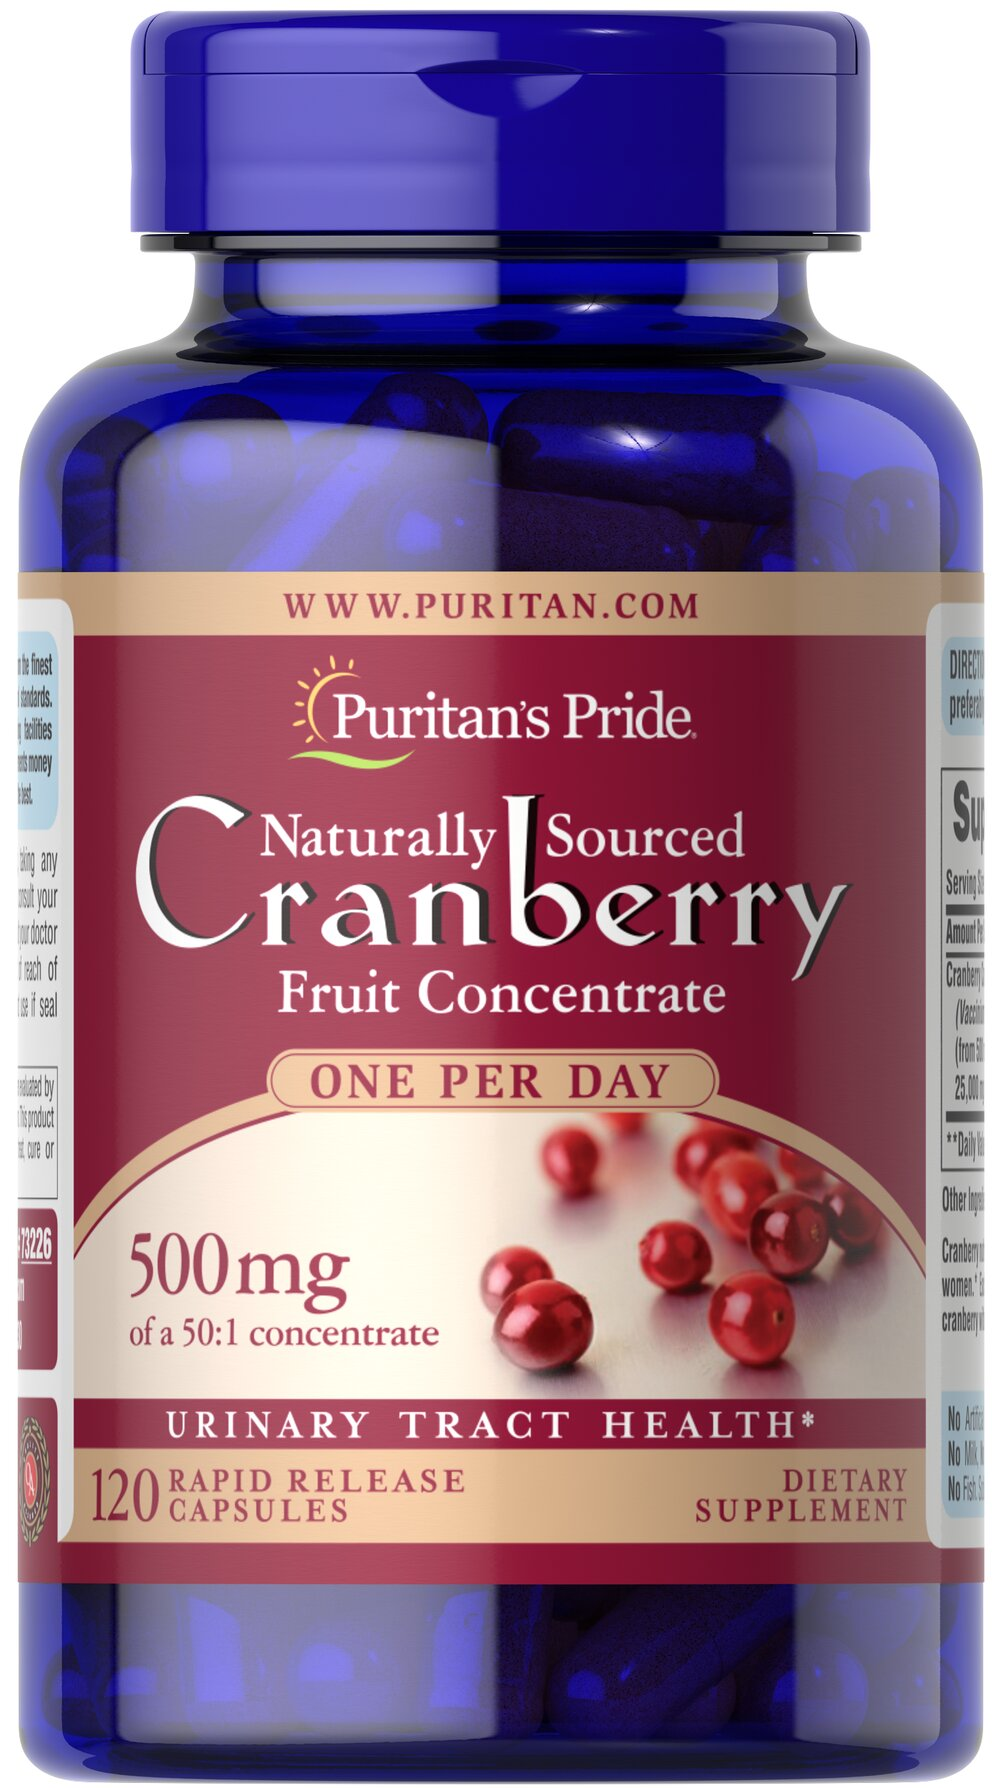 One A Day Cranberry <p>Equivalent to 25,000 mg of Cranberry Fruit per Capsule.</p><p>For years, health experts have recommended cranberry to help promote urinary tract health.**</p><p>Each dose provides the natural benefits of the whole cranberry without any preservatives, sugars, water, flavoring or color.</p> 120 Capsules 500 mg $27.69